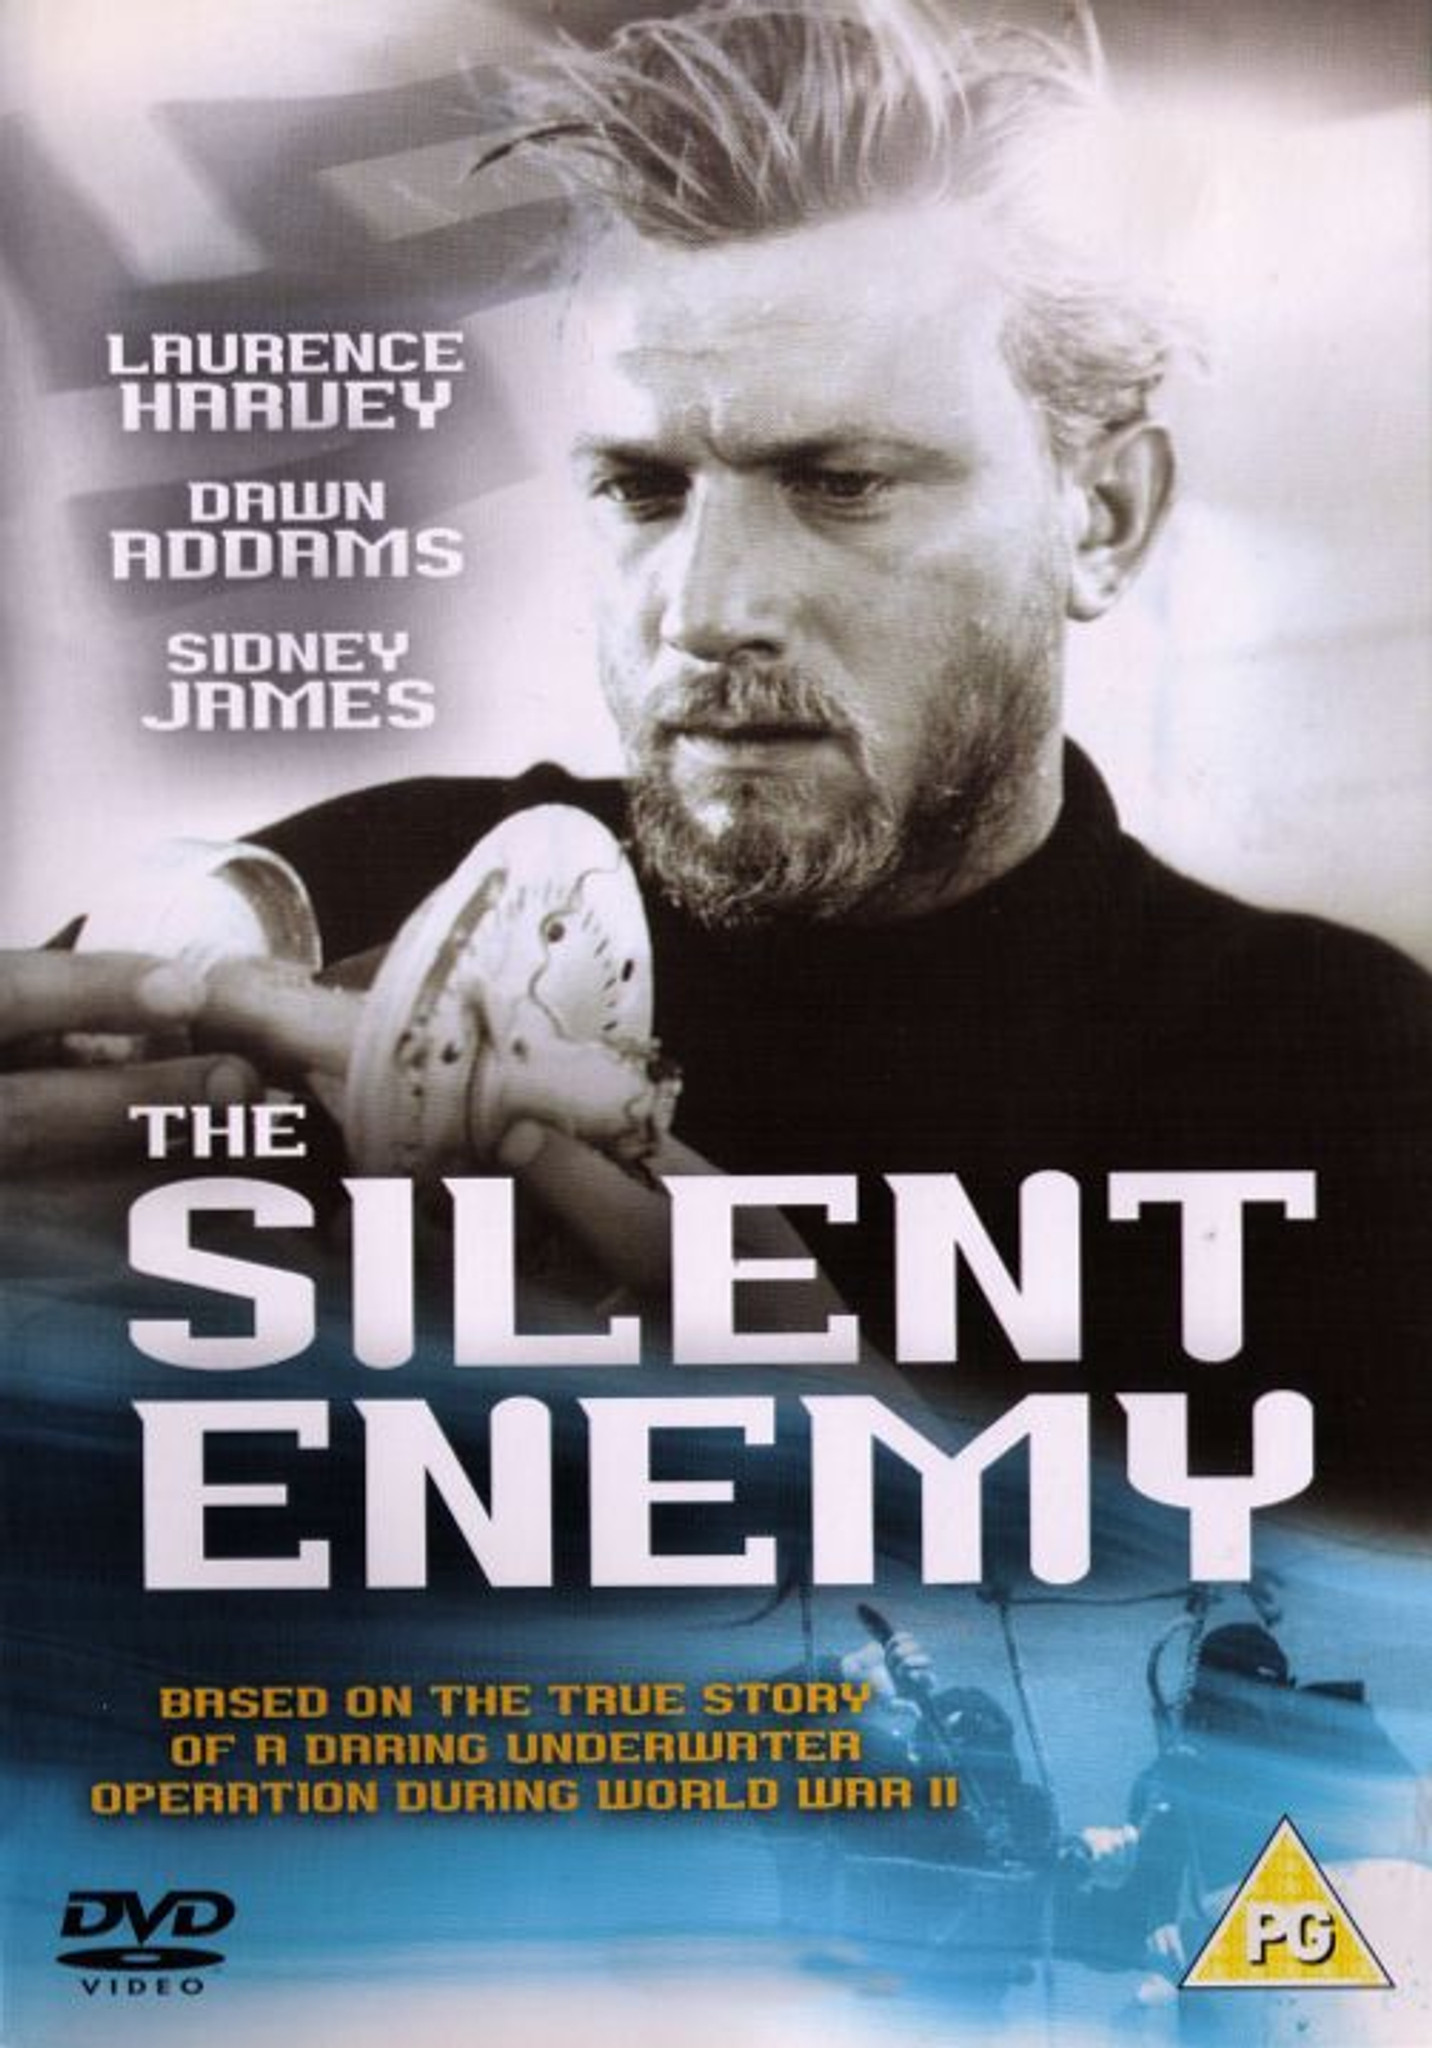 The Silent Enemy DVD